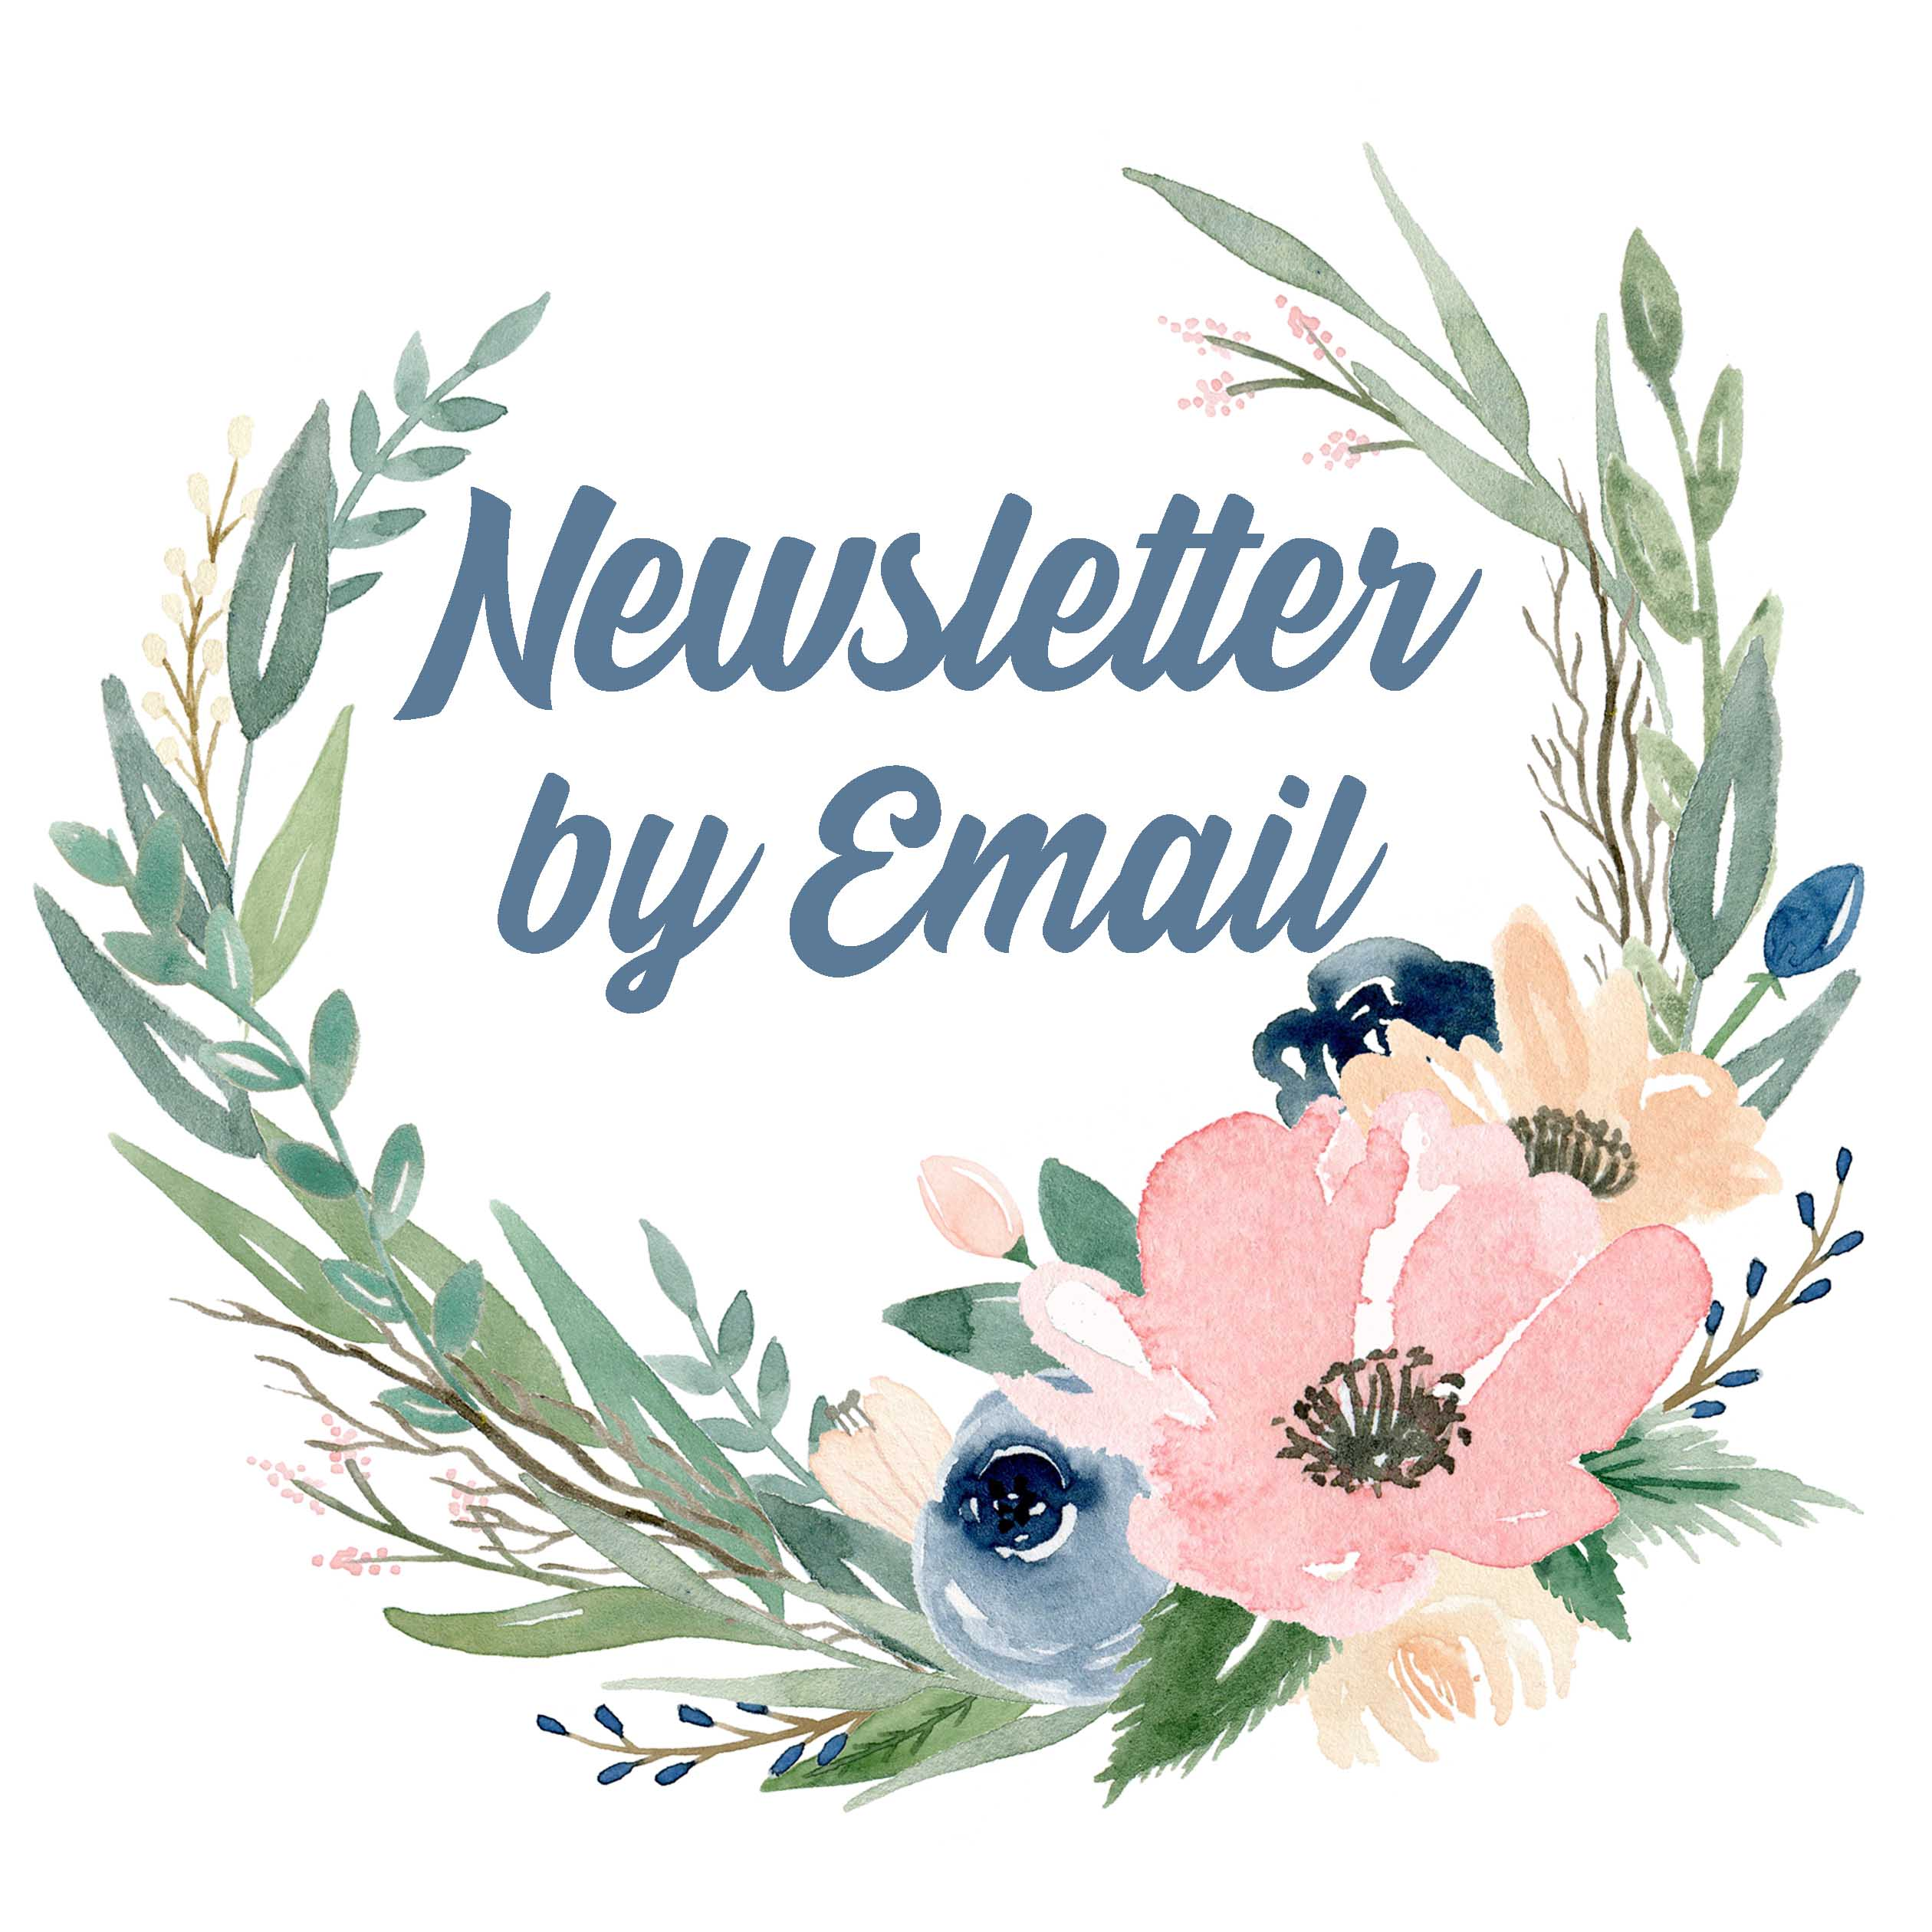 Wreath - Newsletter by Email